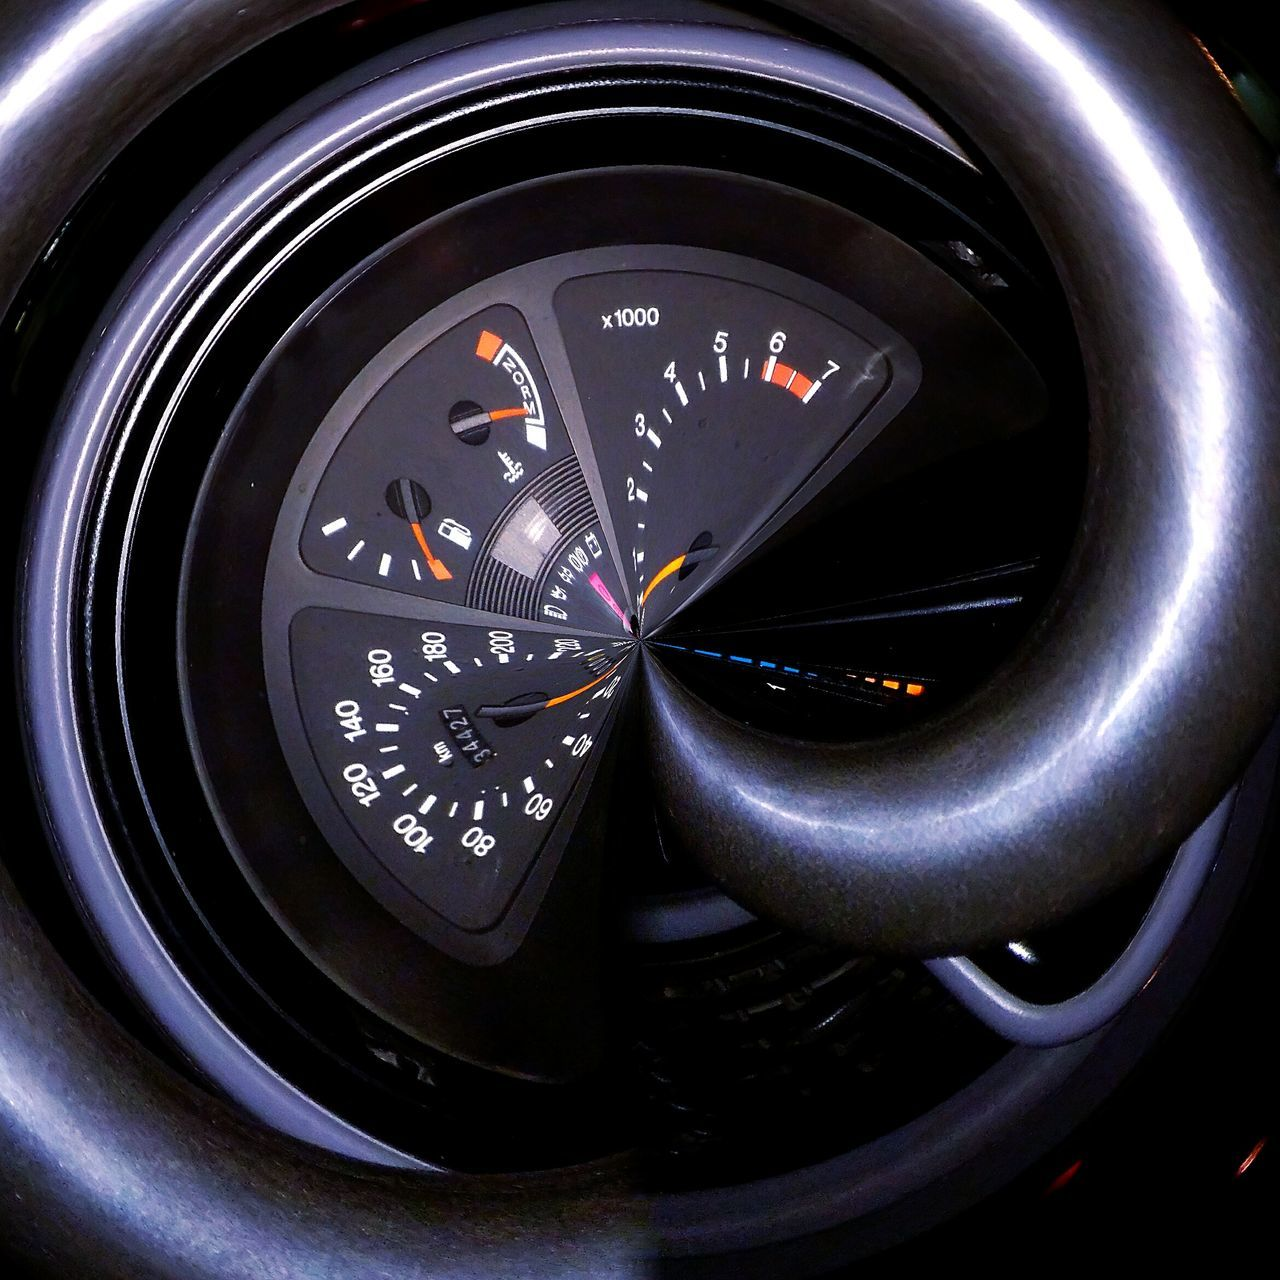 Using some effects on my car's steering wheel Close-up Bulgaria Varna Getting Inspired Varna2017 No People EyeEmNewHere Night Life Night Photography And? Perspective Say What You Wanna Say.  ExpressYourself Trueemotion City Outdoors Car Interior Car Car Steering Wheel Steering Wheel Wheel Ford Sierra Ford Sierra